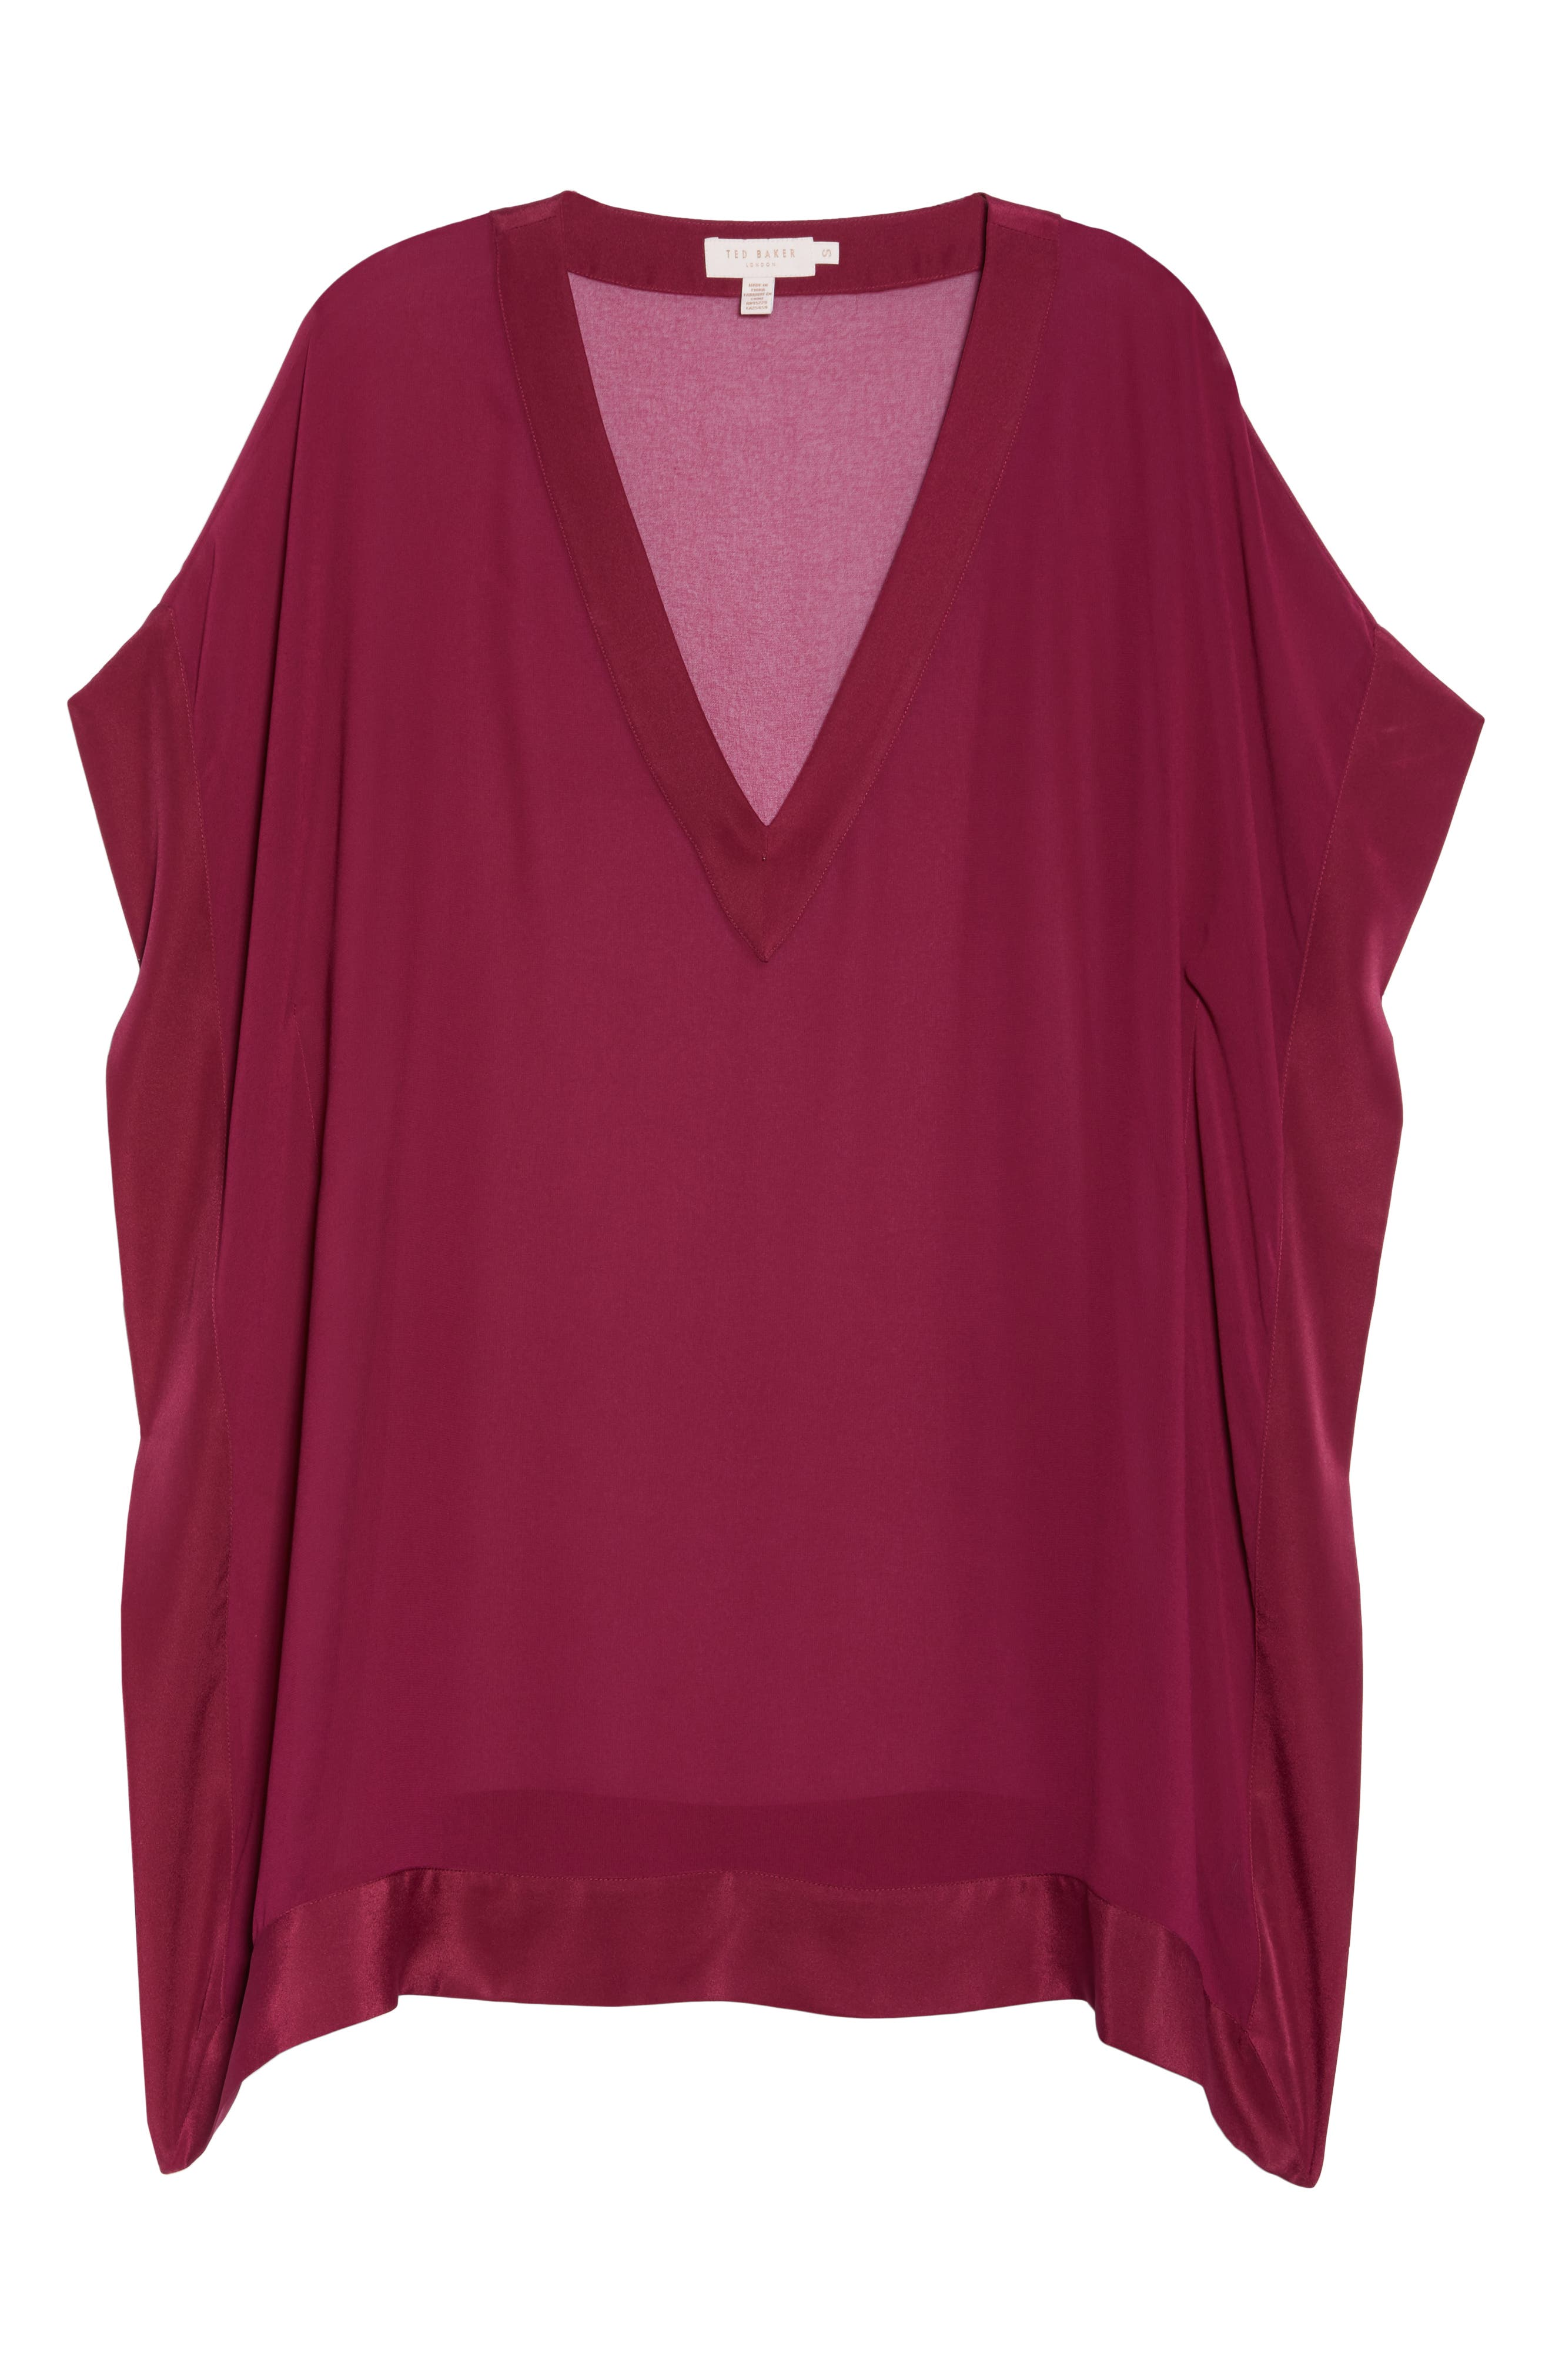 Holical Cover-Up Tunic,                             Alternate thumbnail 6, color,                             651